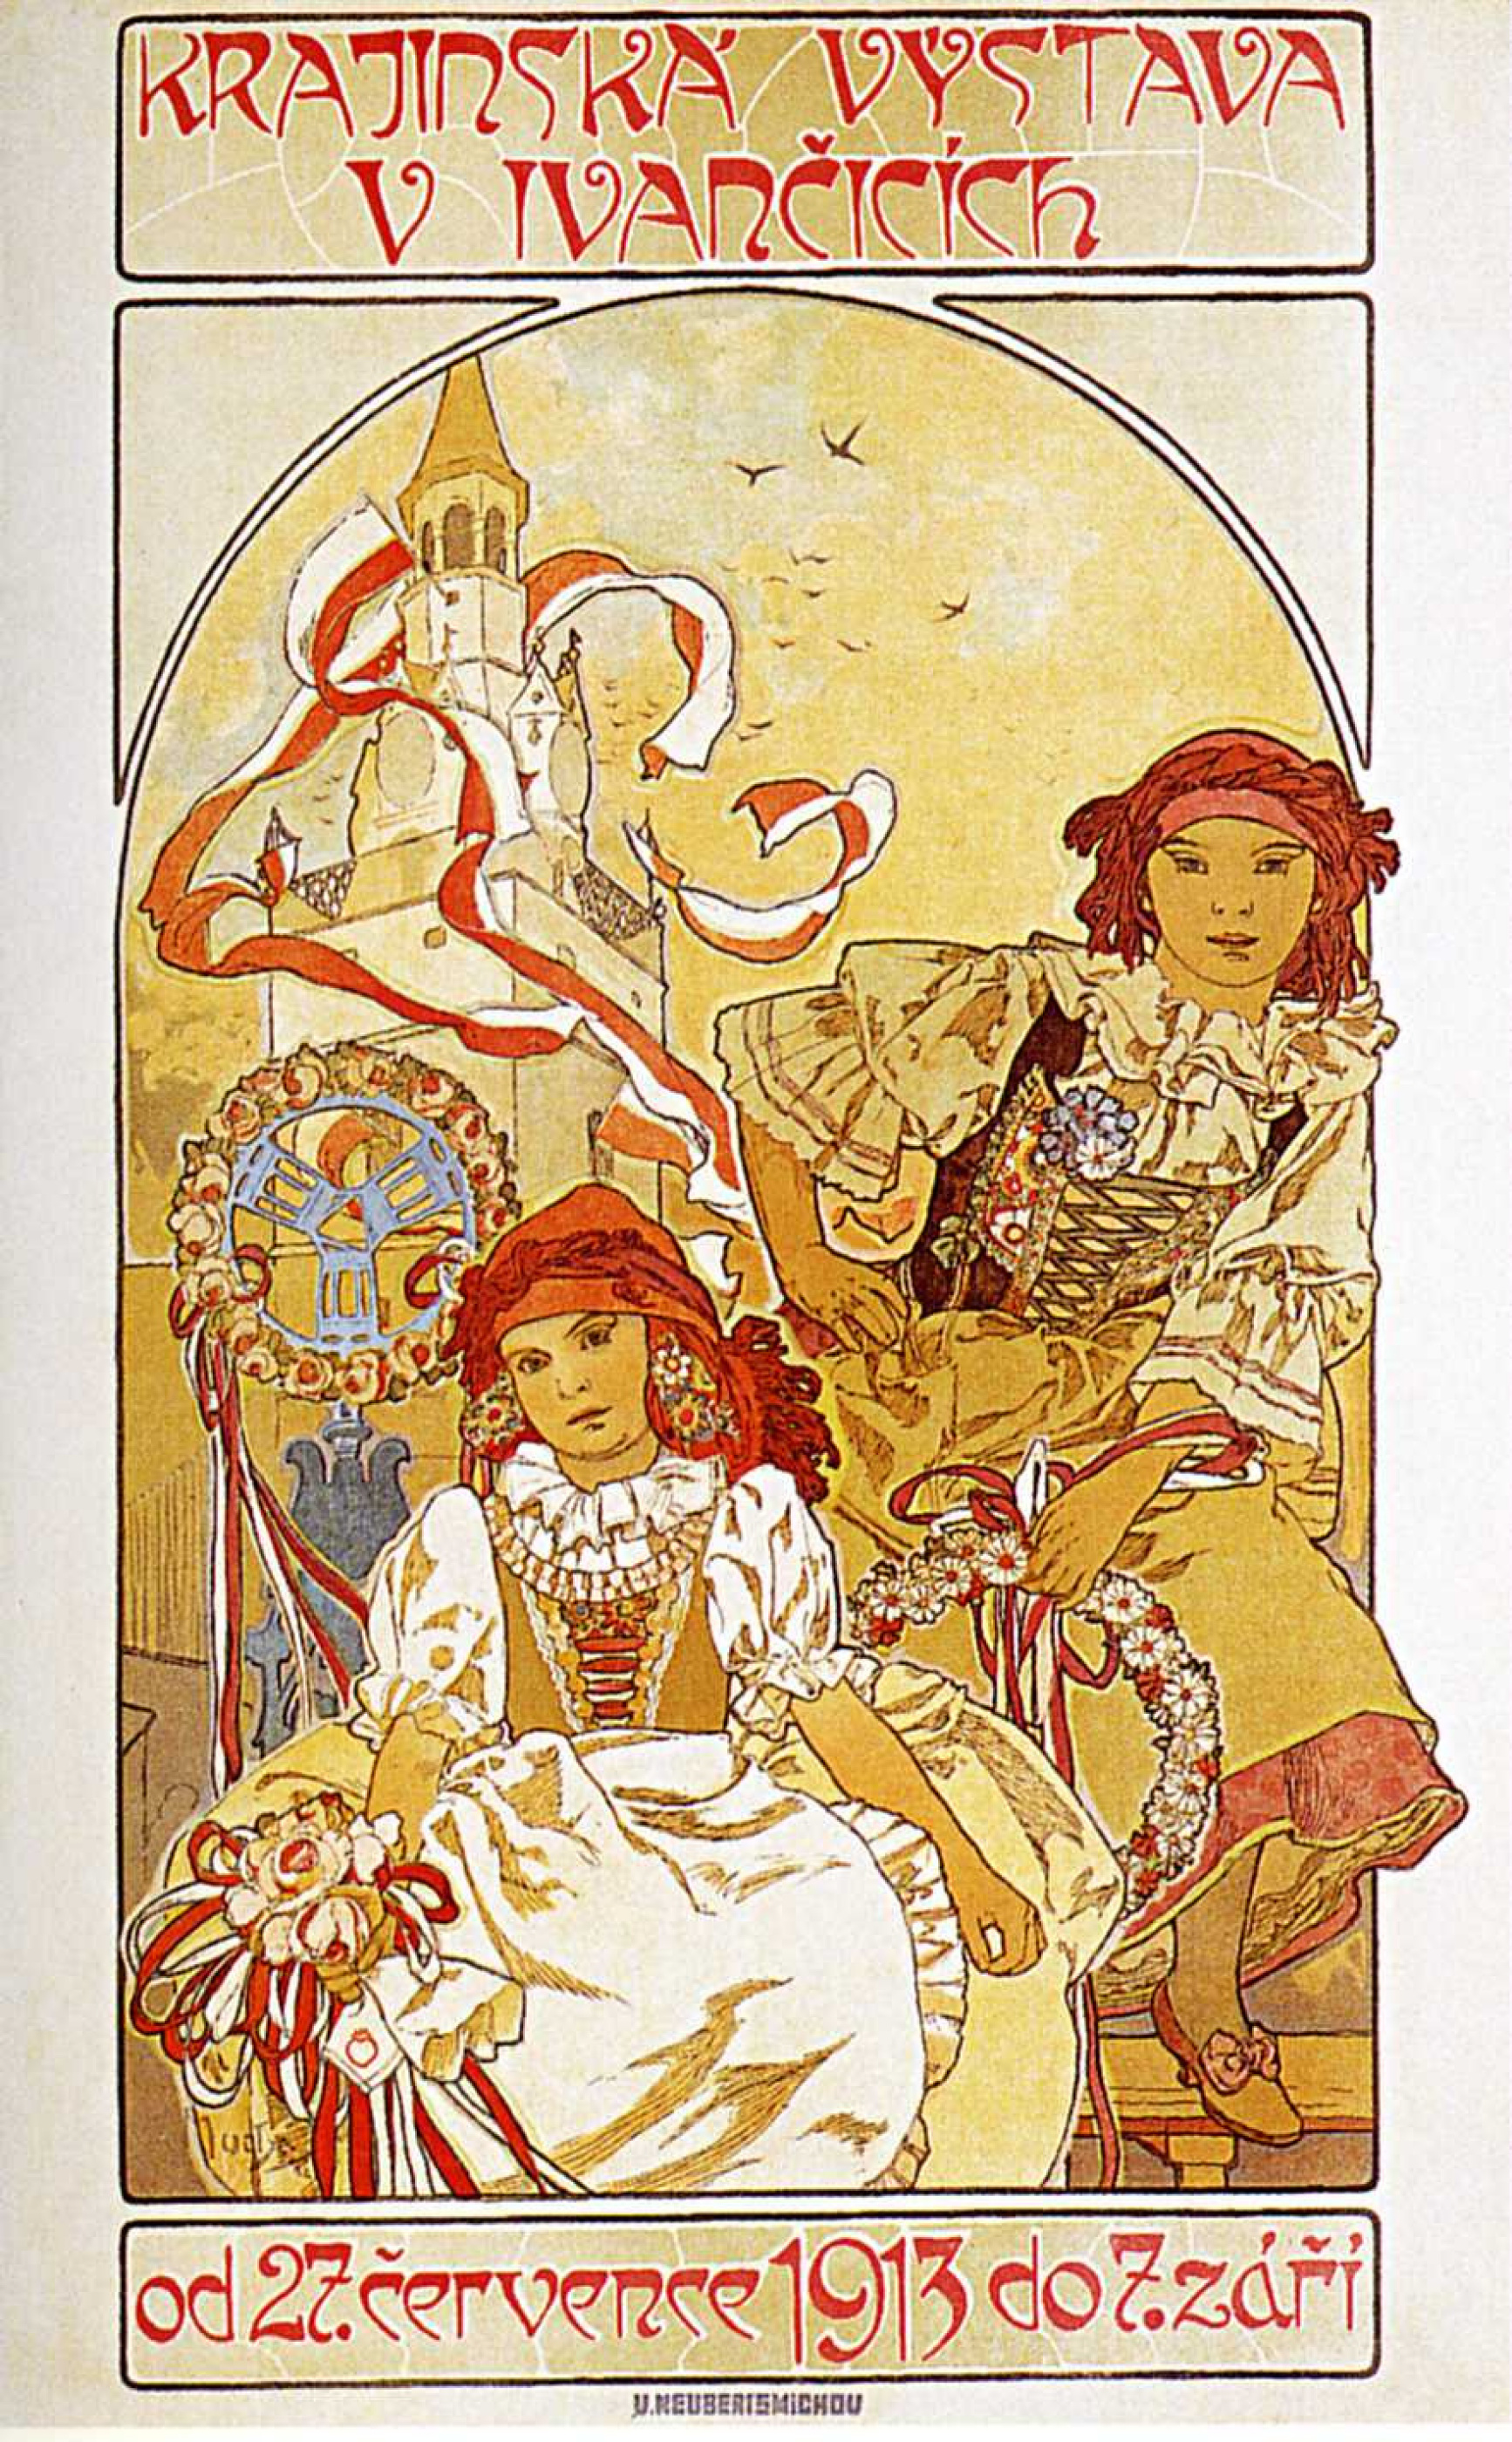 Alfons Mucha. Advertising poster for Regional exhibition at Ivančice